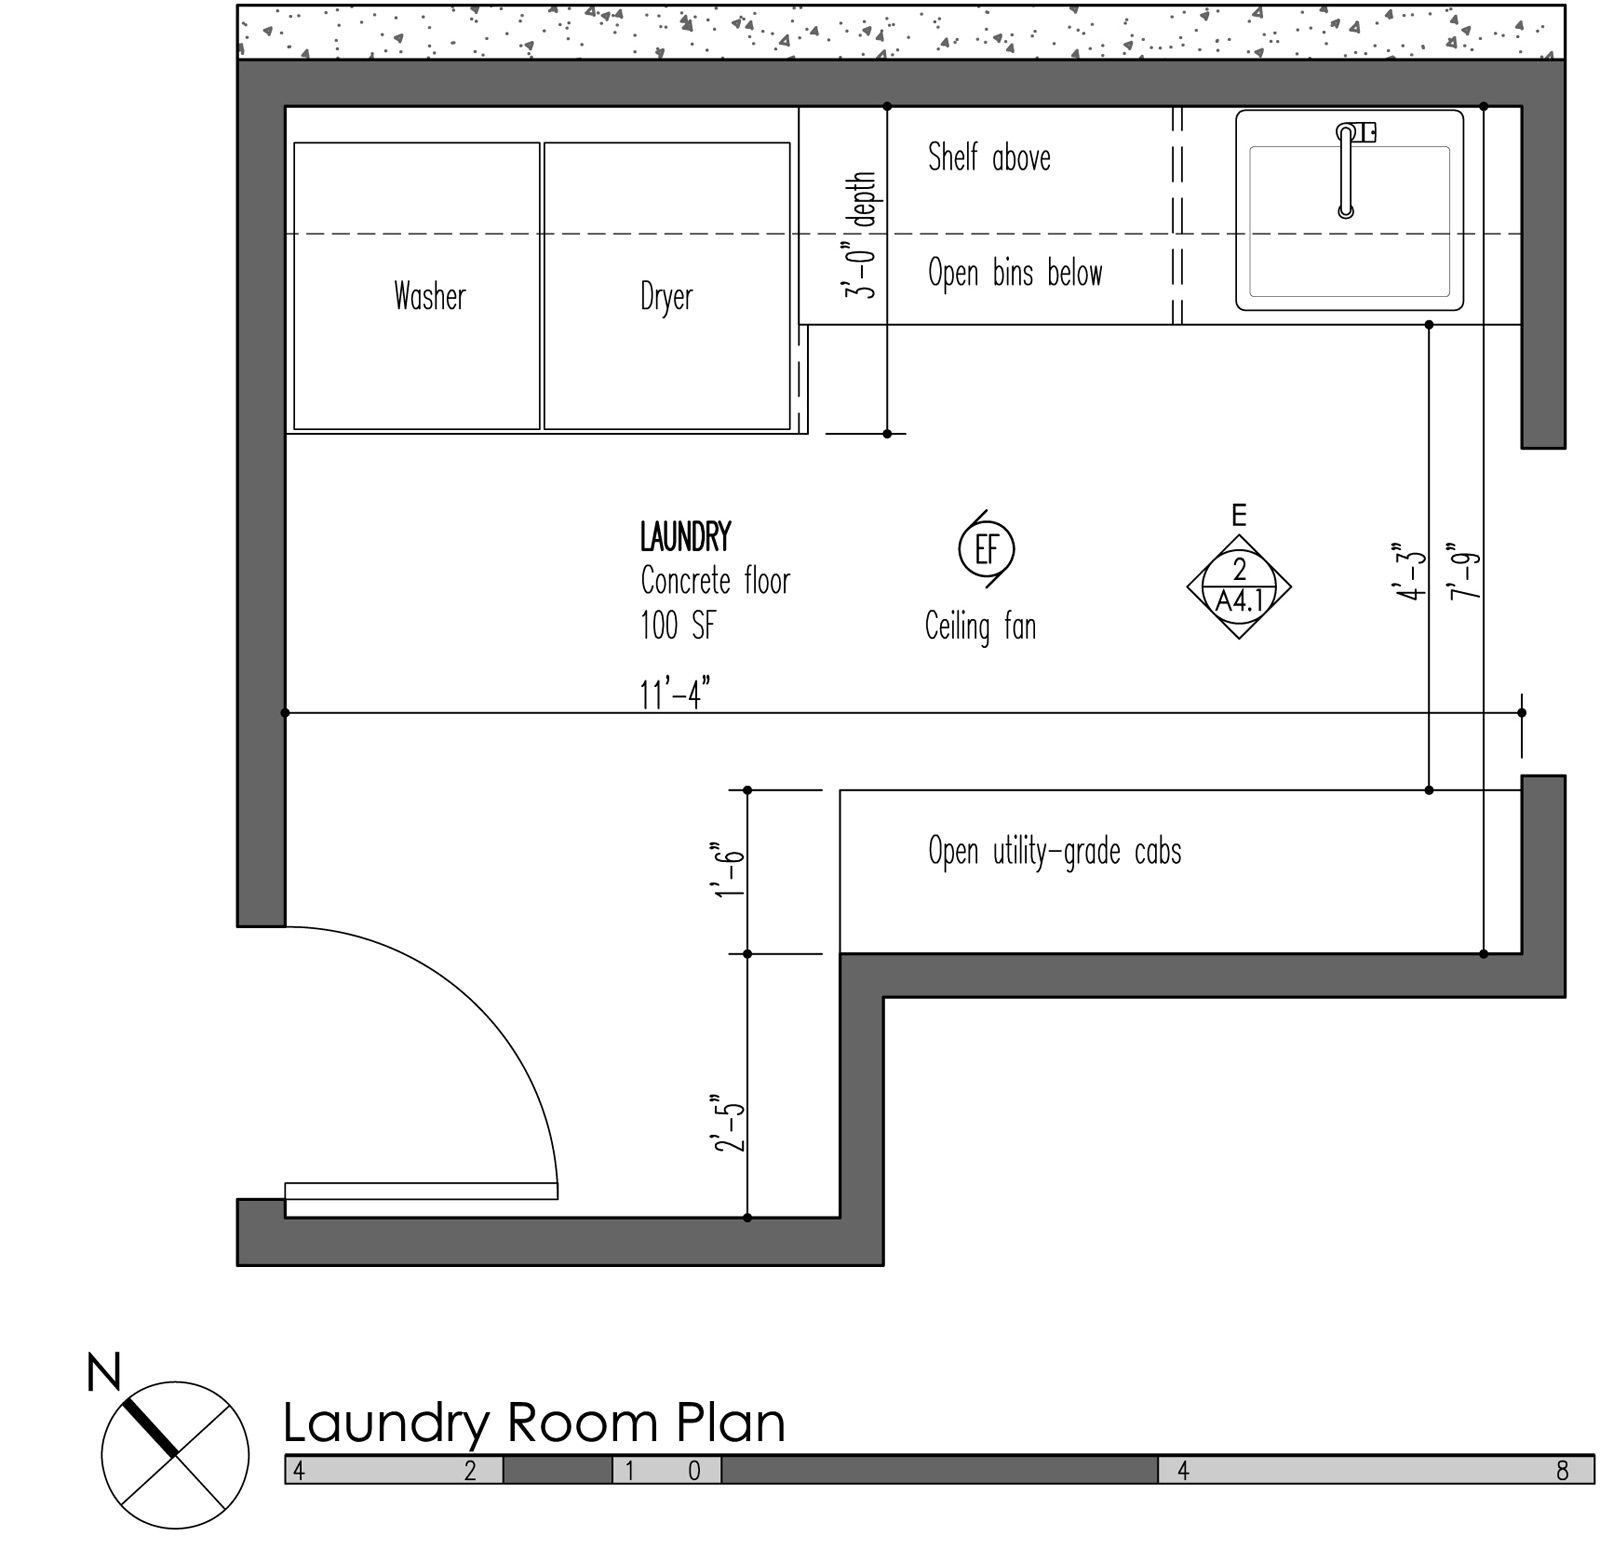 Mud Laundry Room Design Plans So Helpful Laundry Room Design Elegant Laundry Room Room Planning